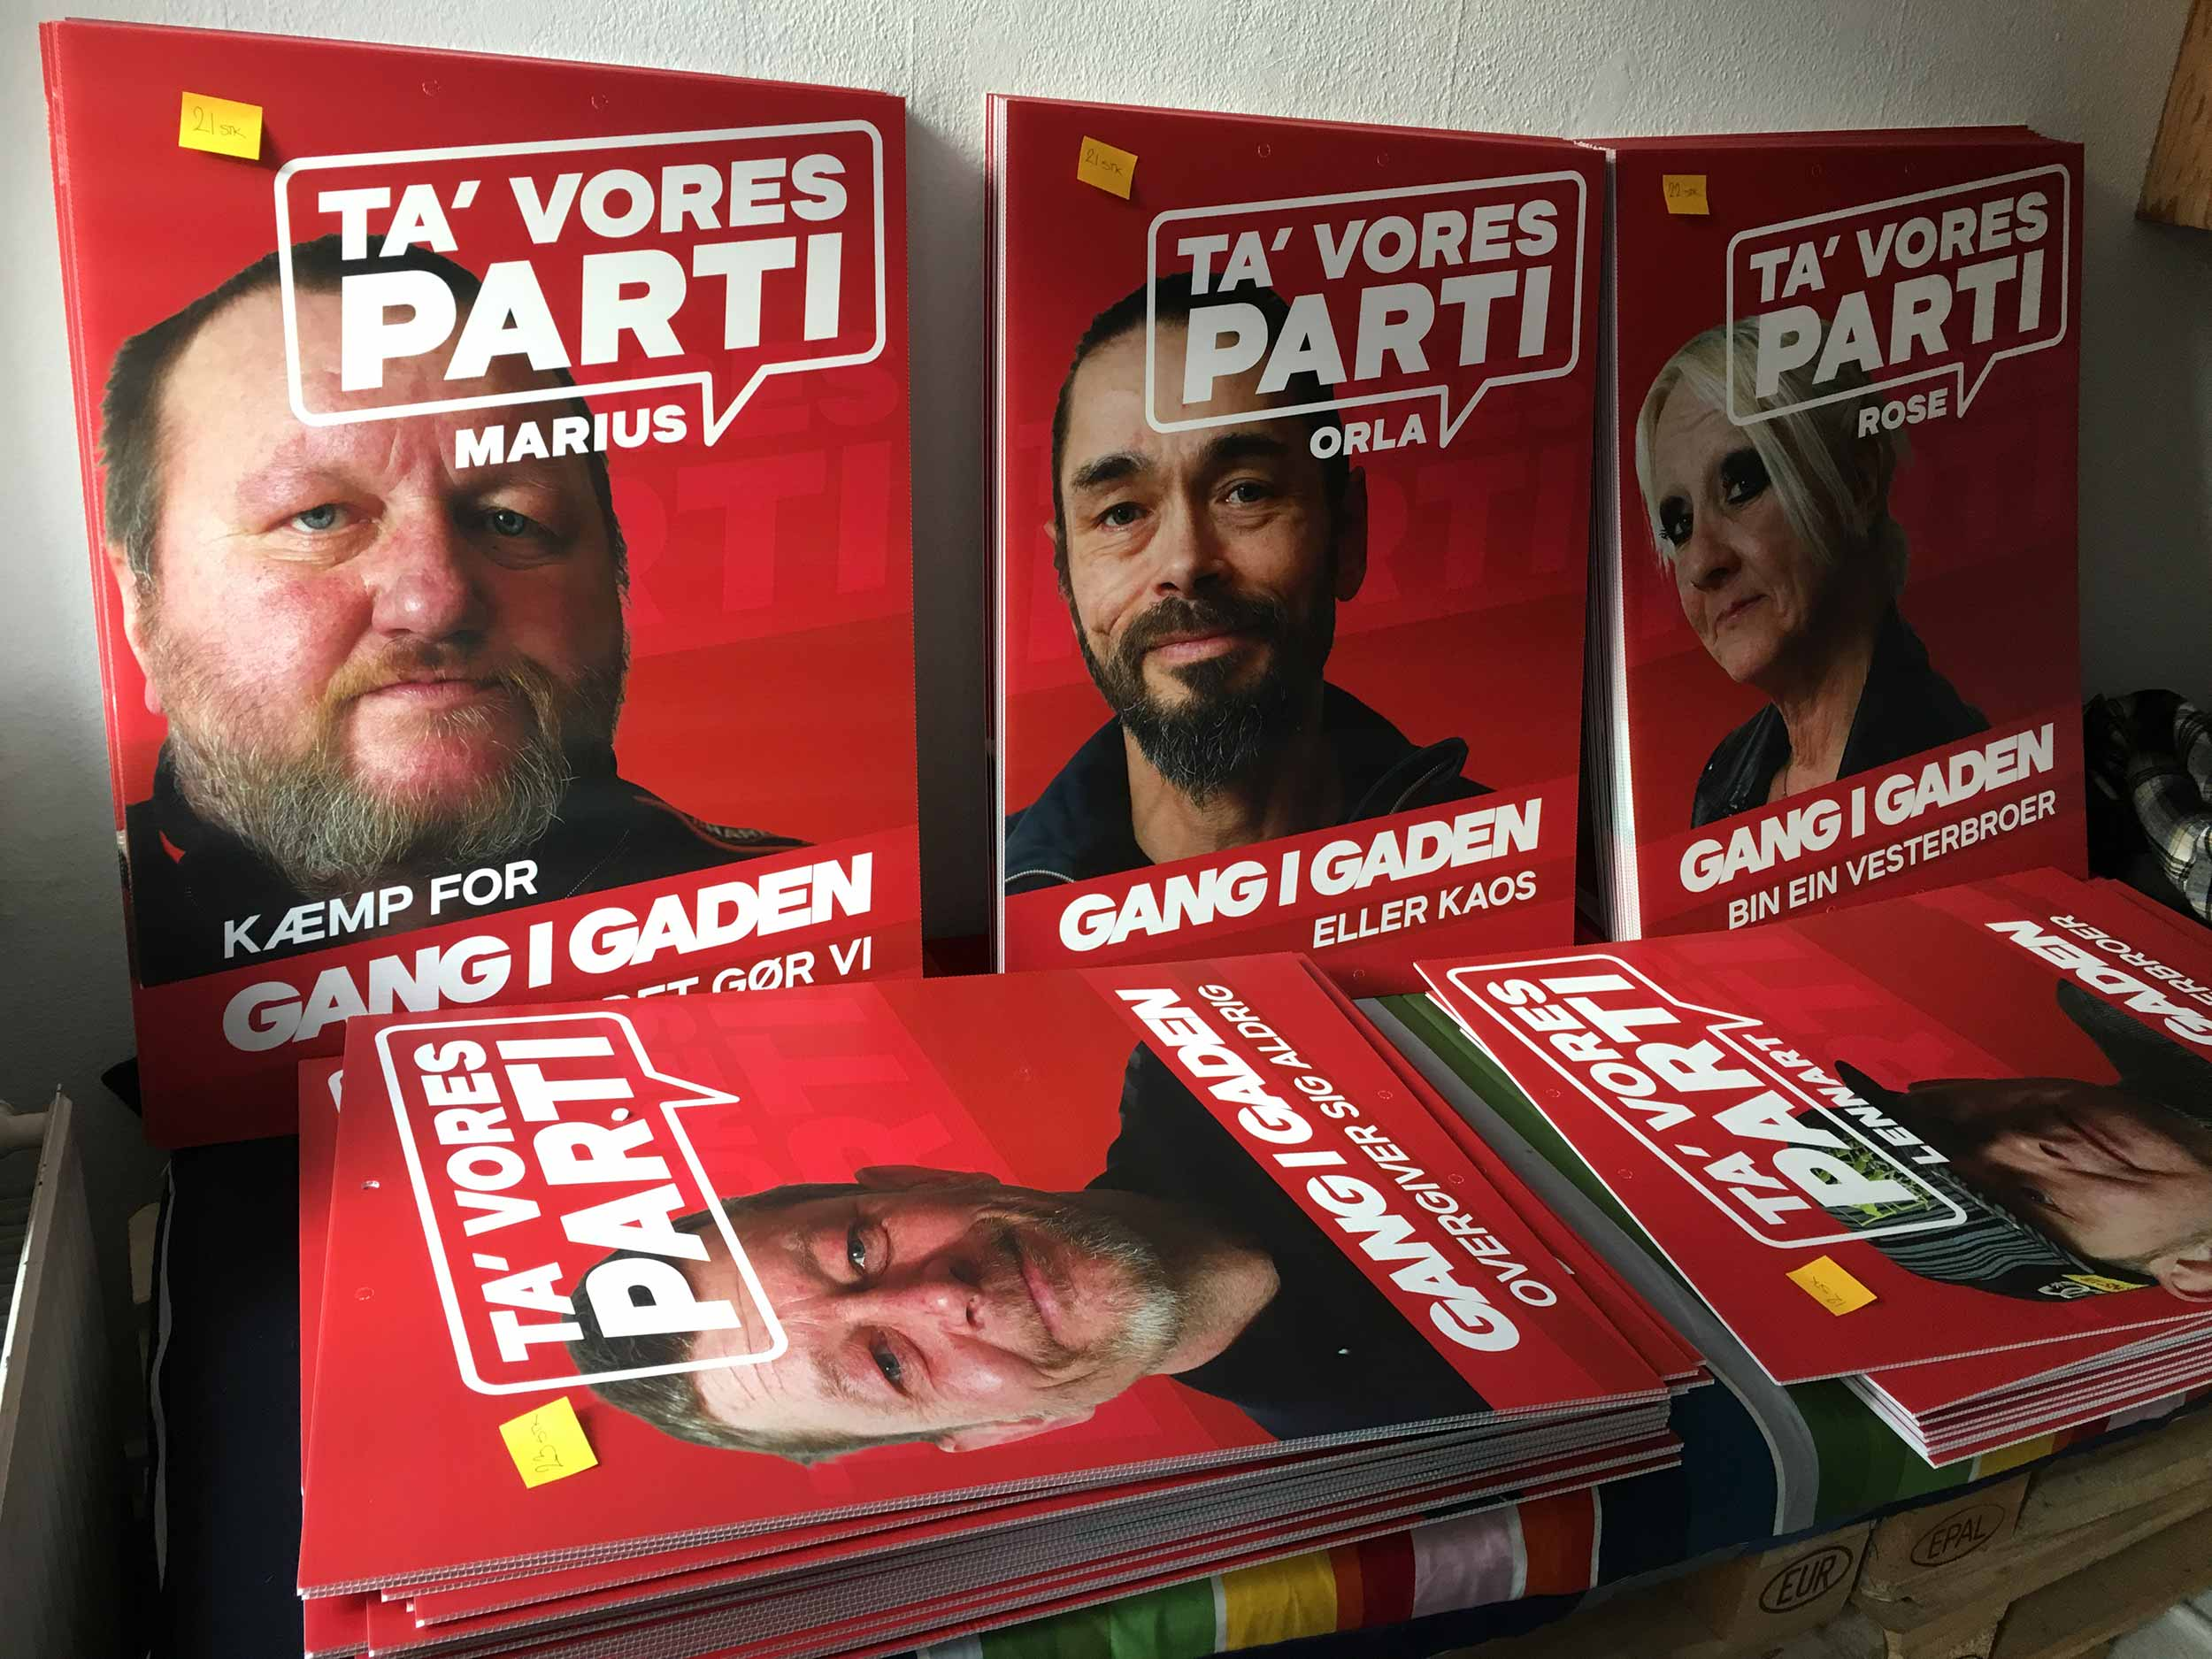 Gang i gaden posters in a room, ready to be hanged